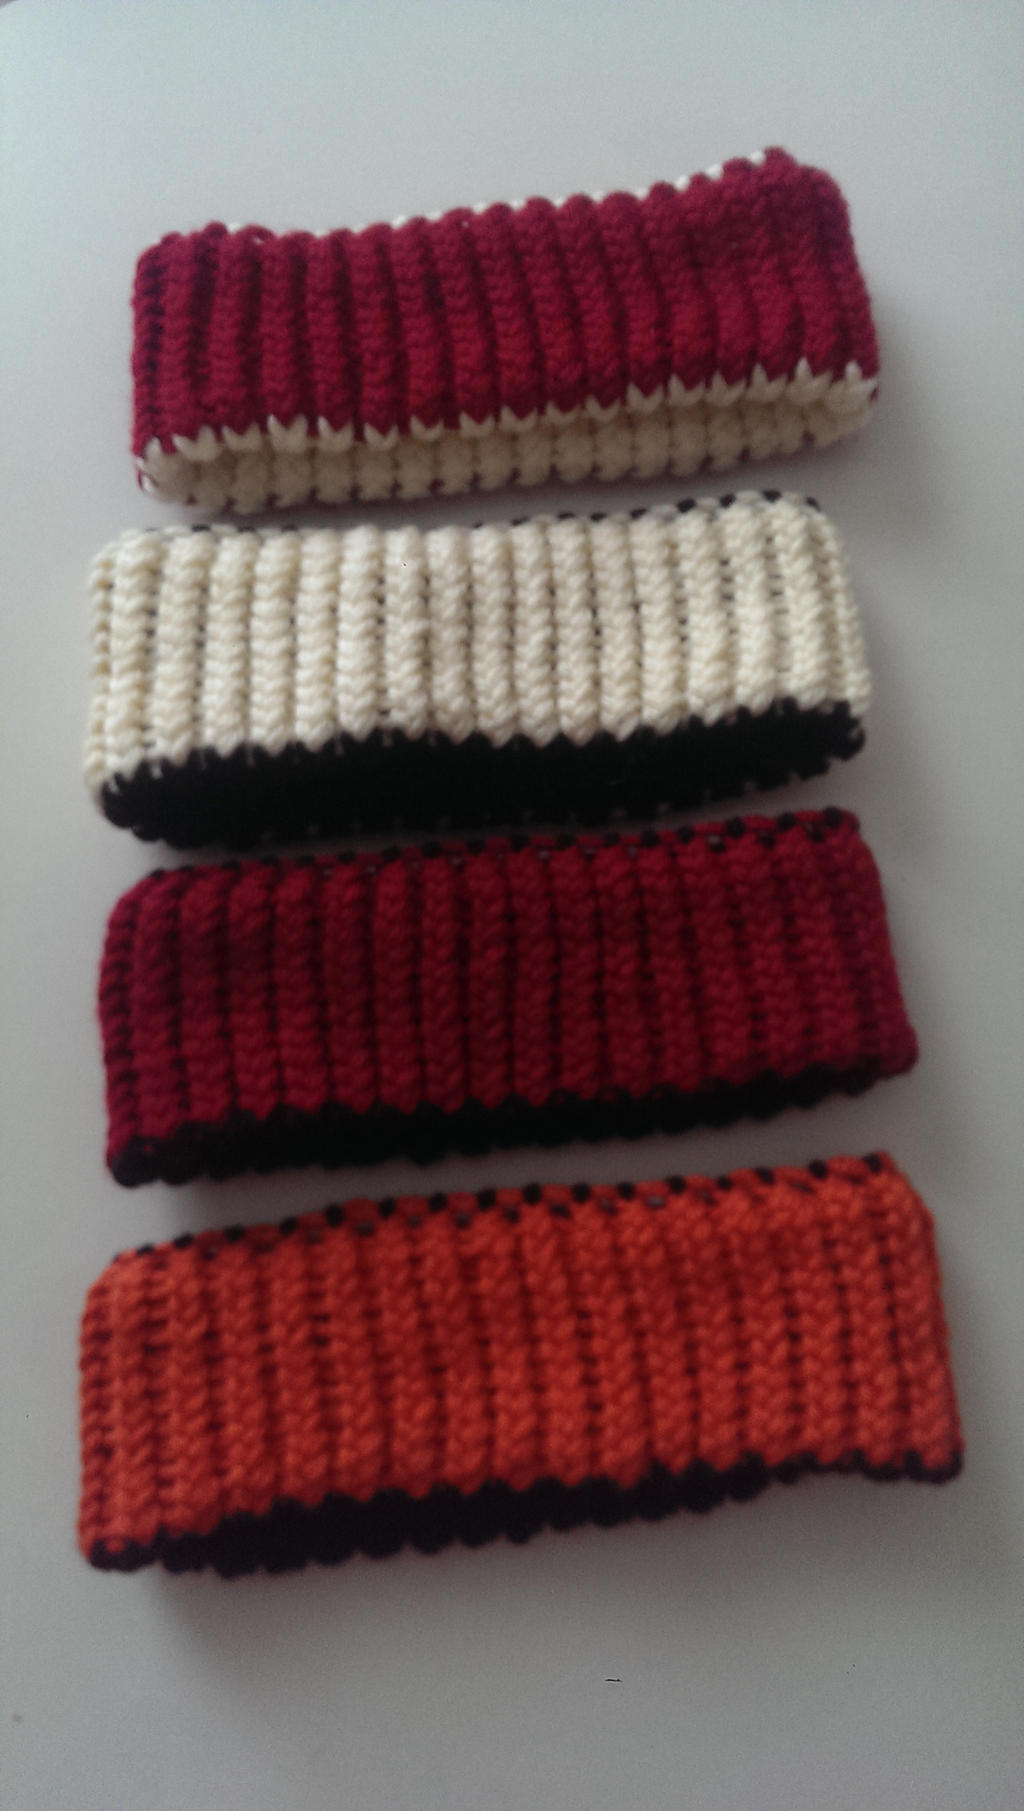 Knitting Journals Sale : For sale reverisble loom knit headbands by wykked as syn